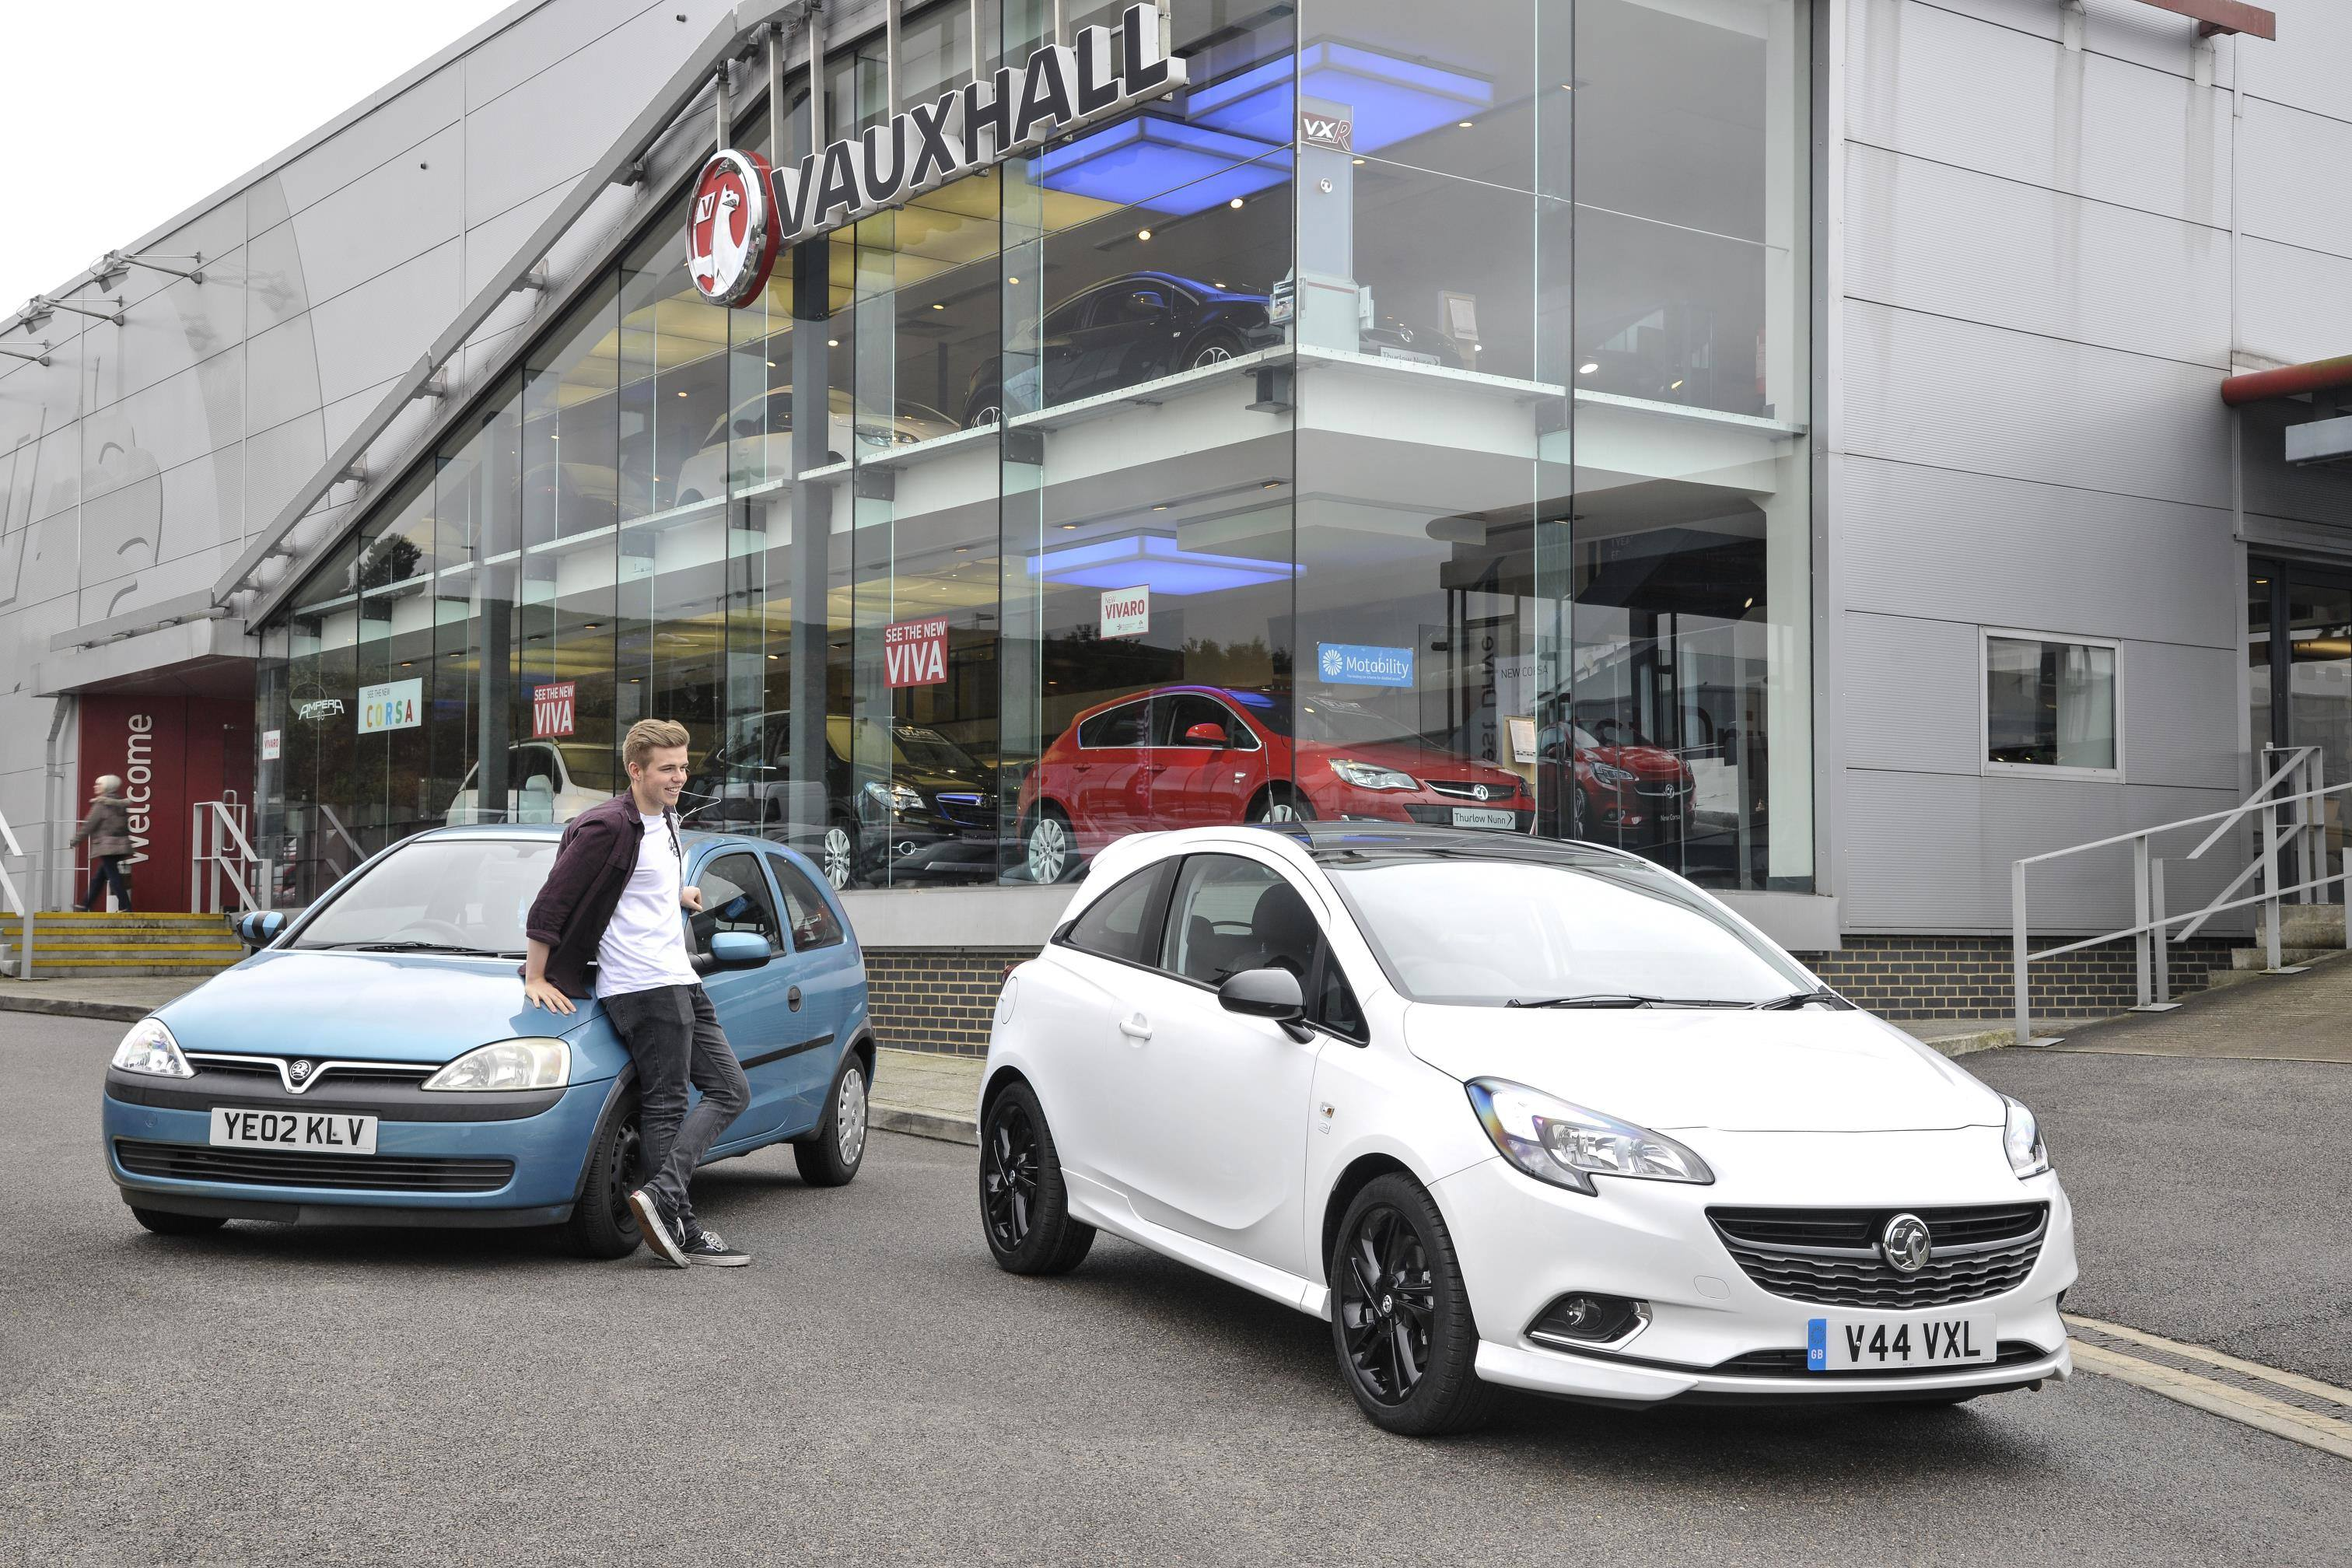 image of a person trading an old vauxhall corsa in for a brand new one